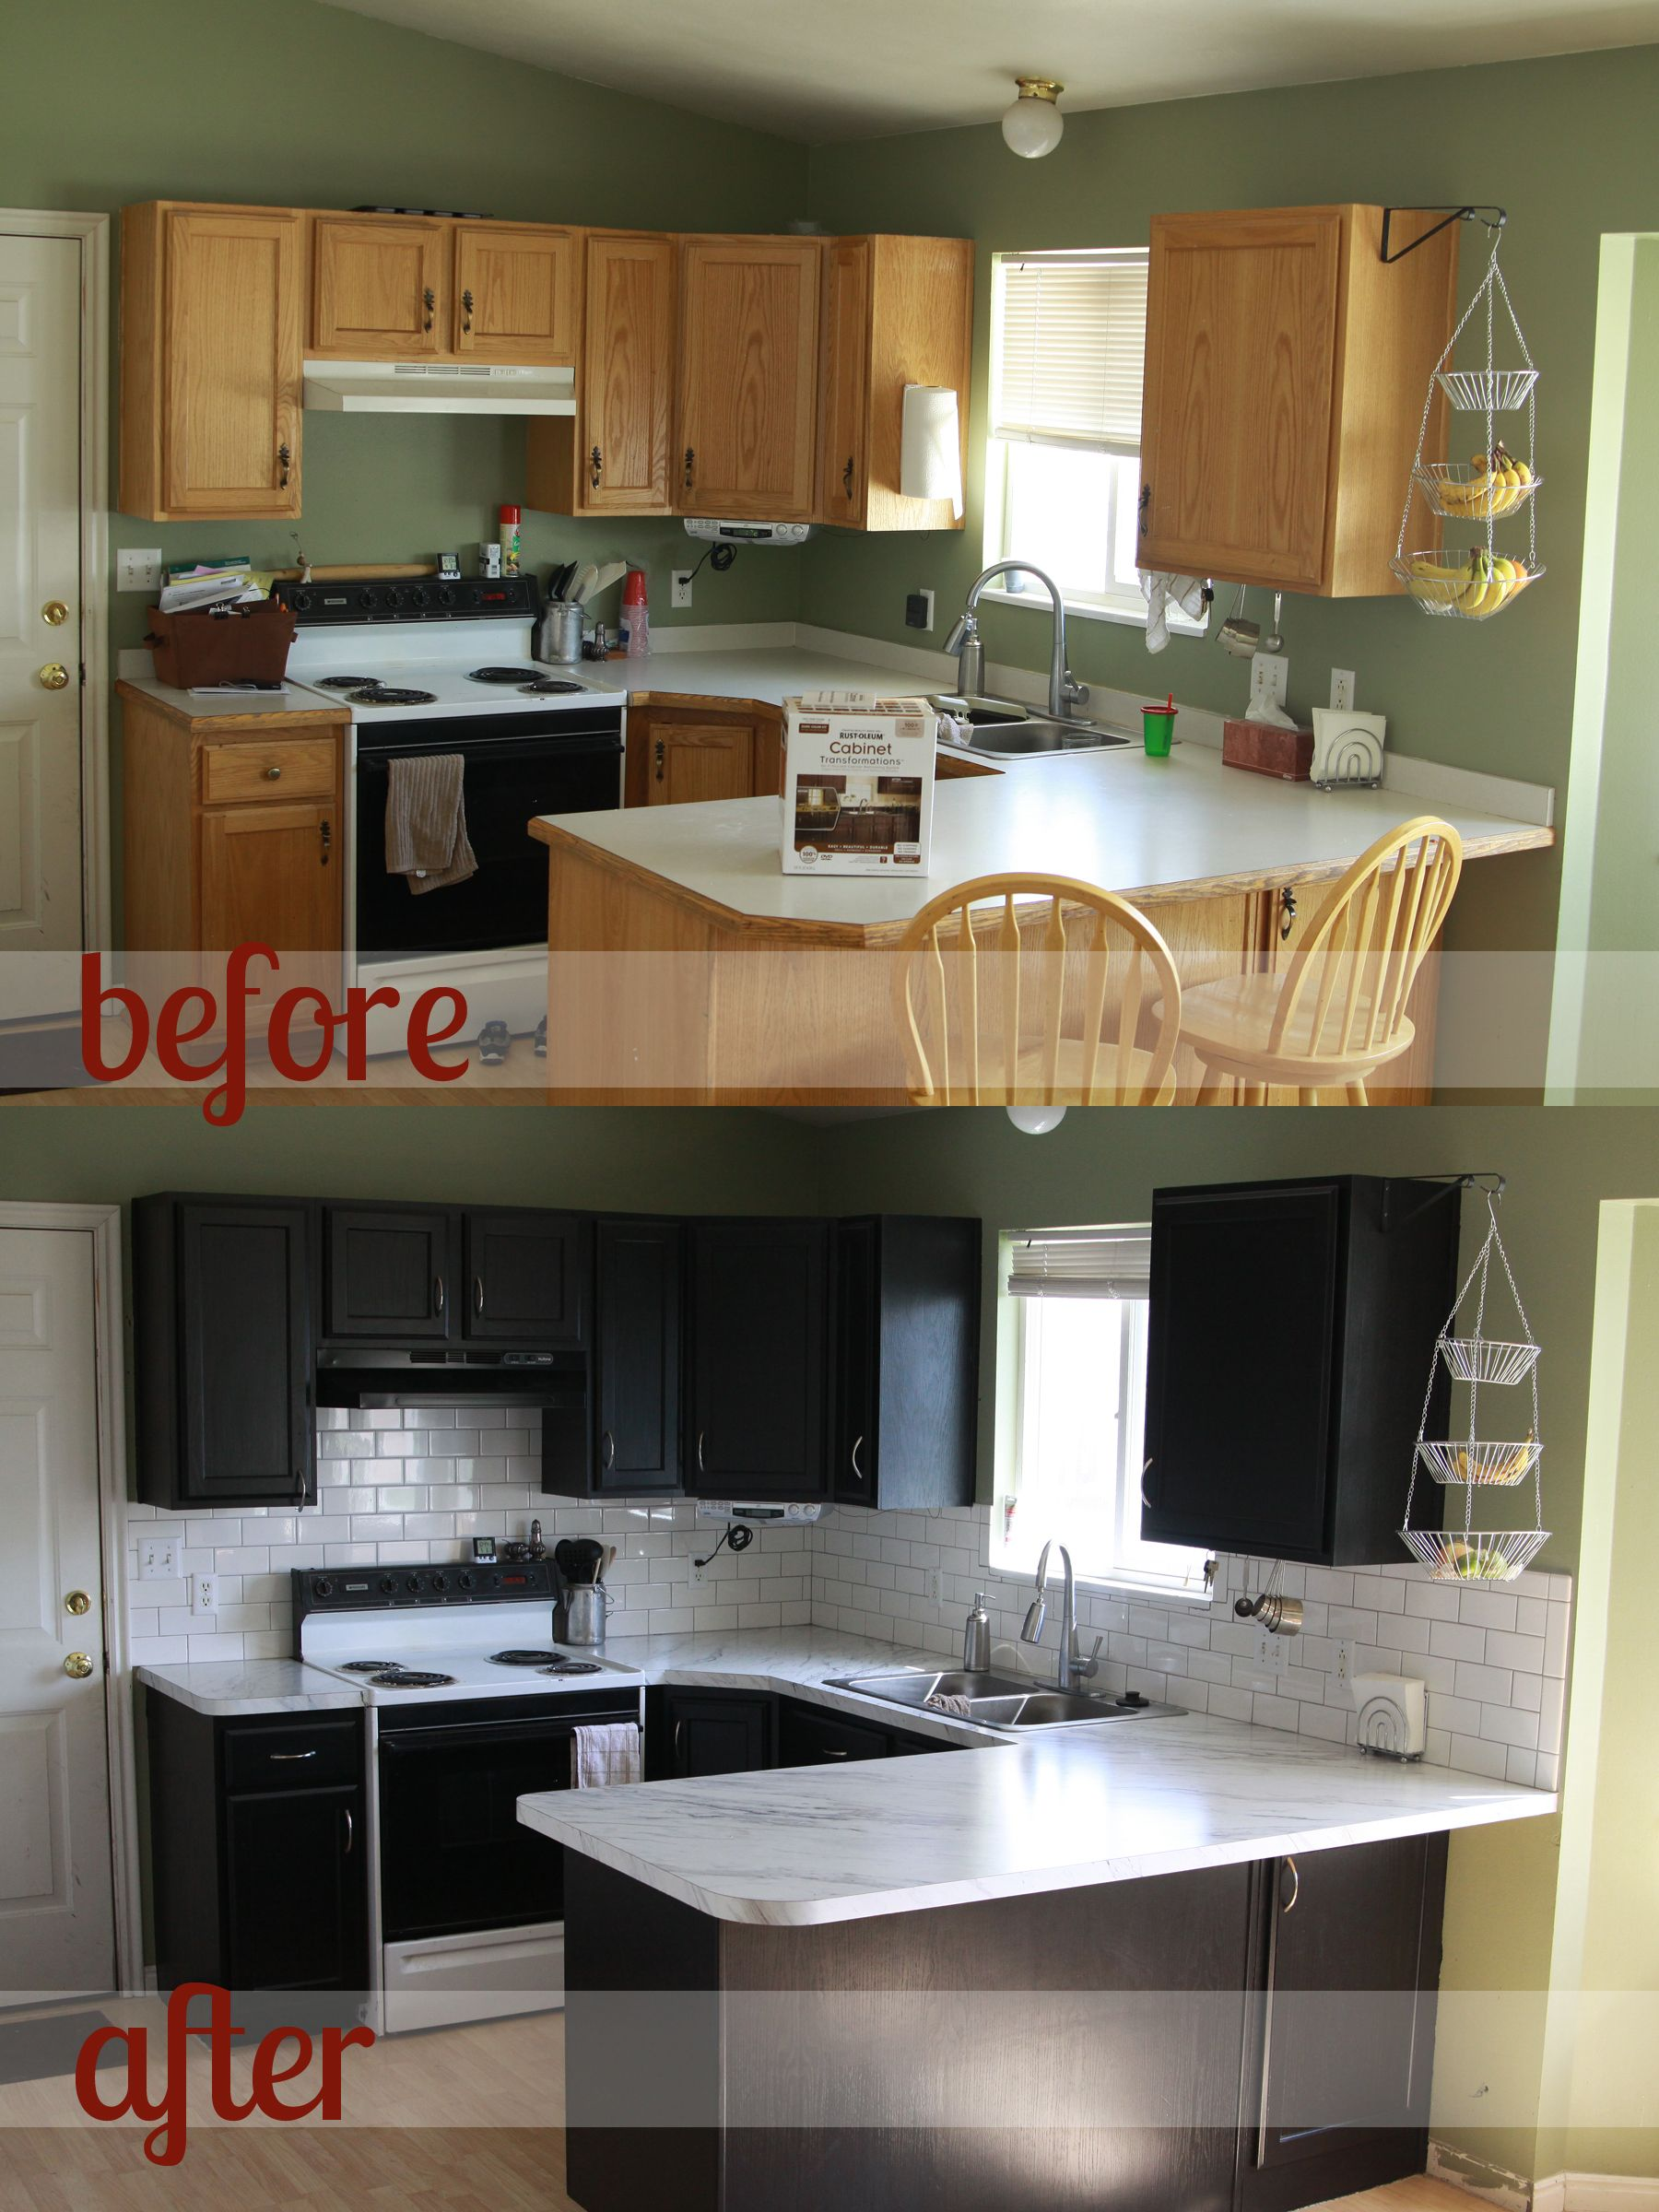 Best Kitchen Gallery: Rustoleum Cabi Transformations Review Before After And Tips of Kitchen Cabinet Paint Rustoleum on rachelxblog.com